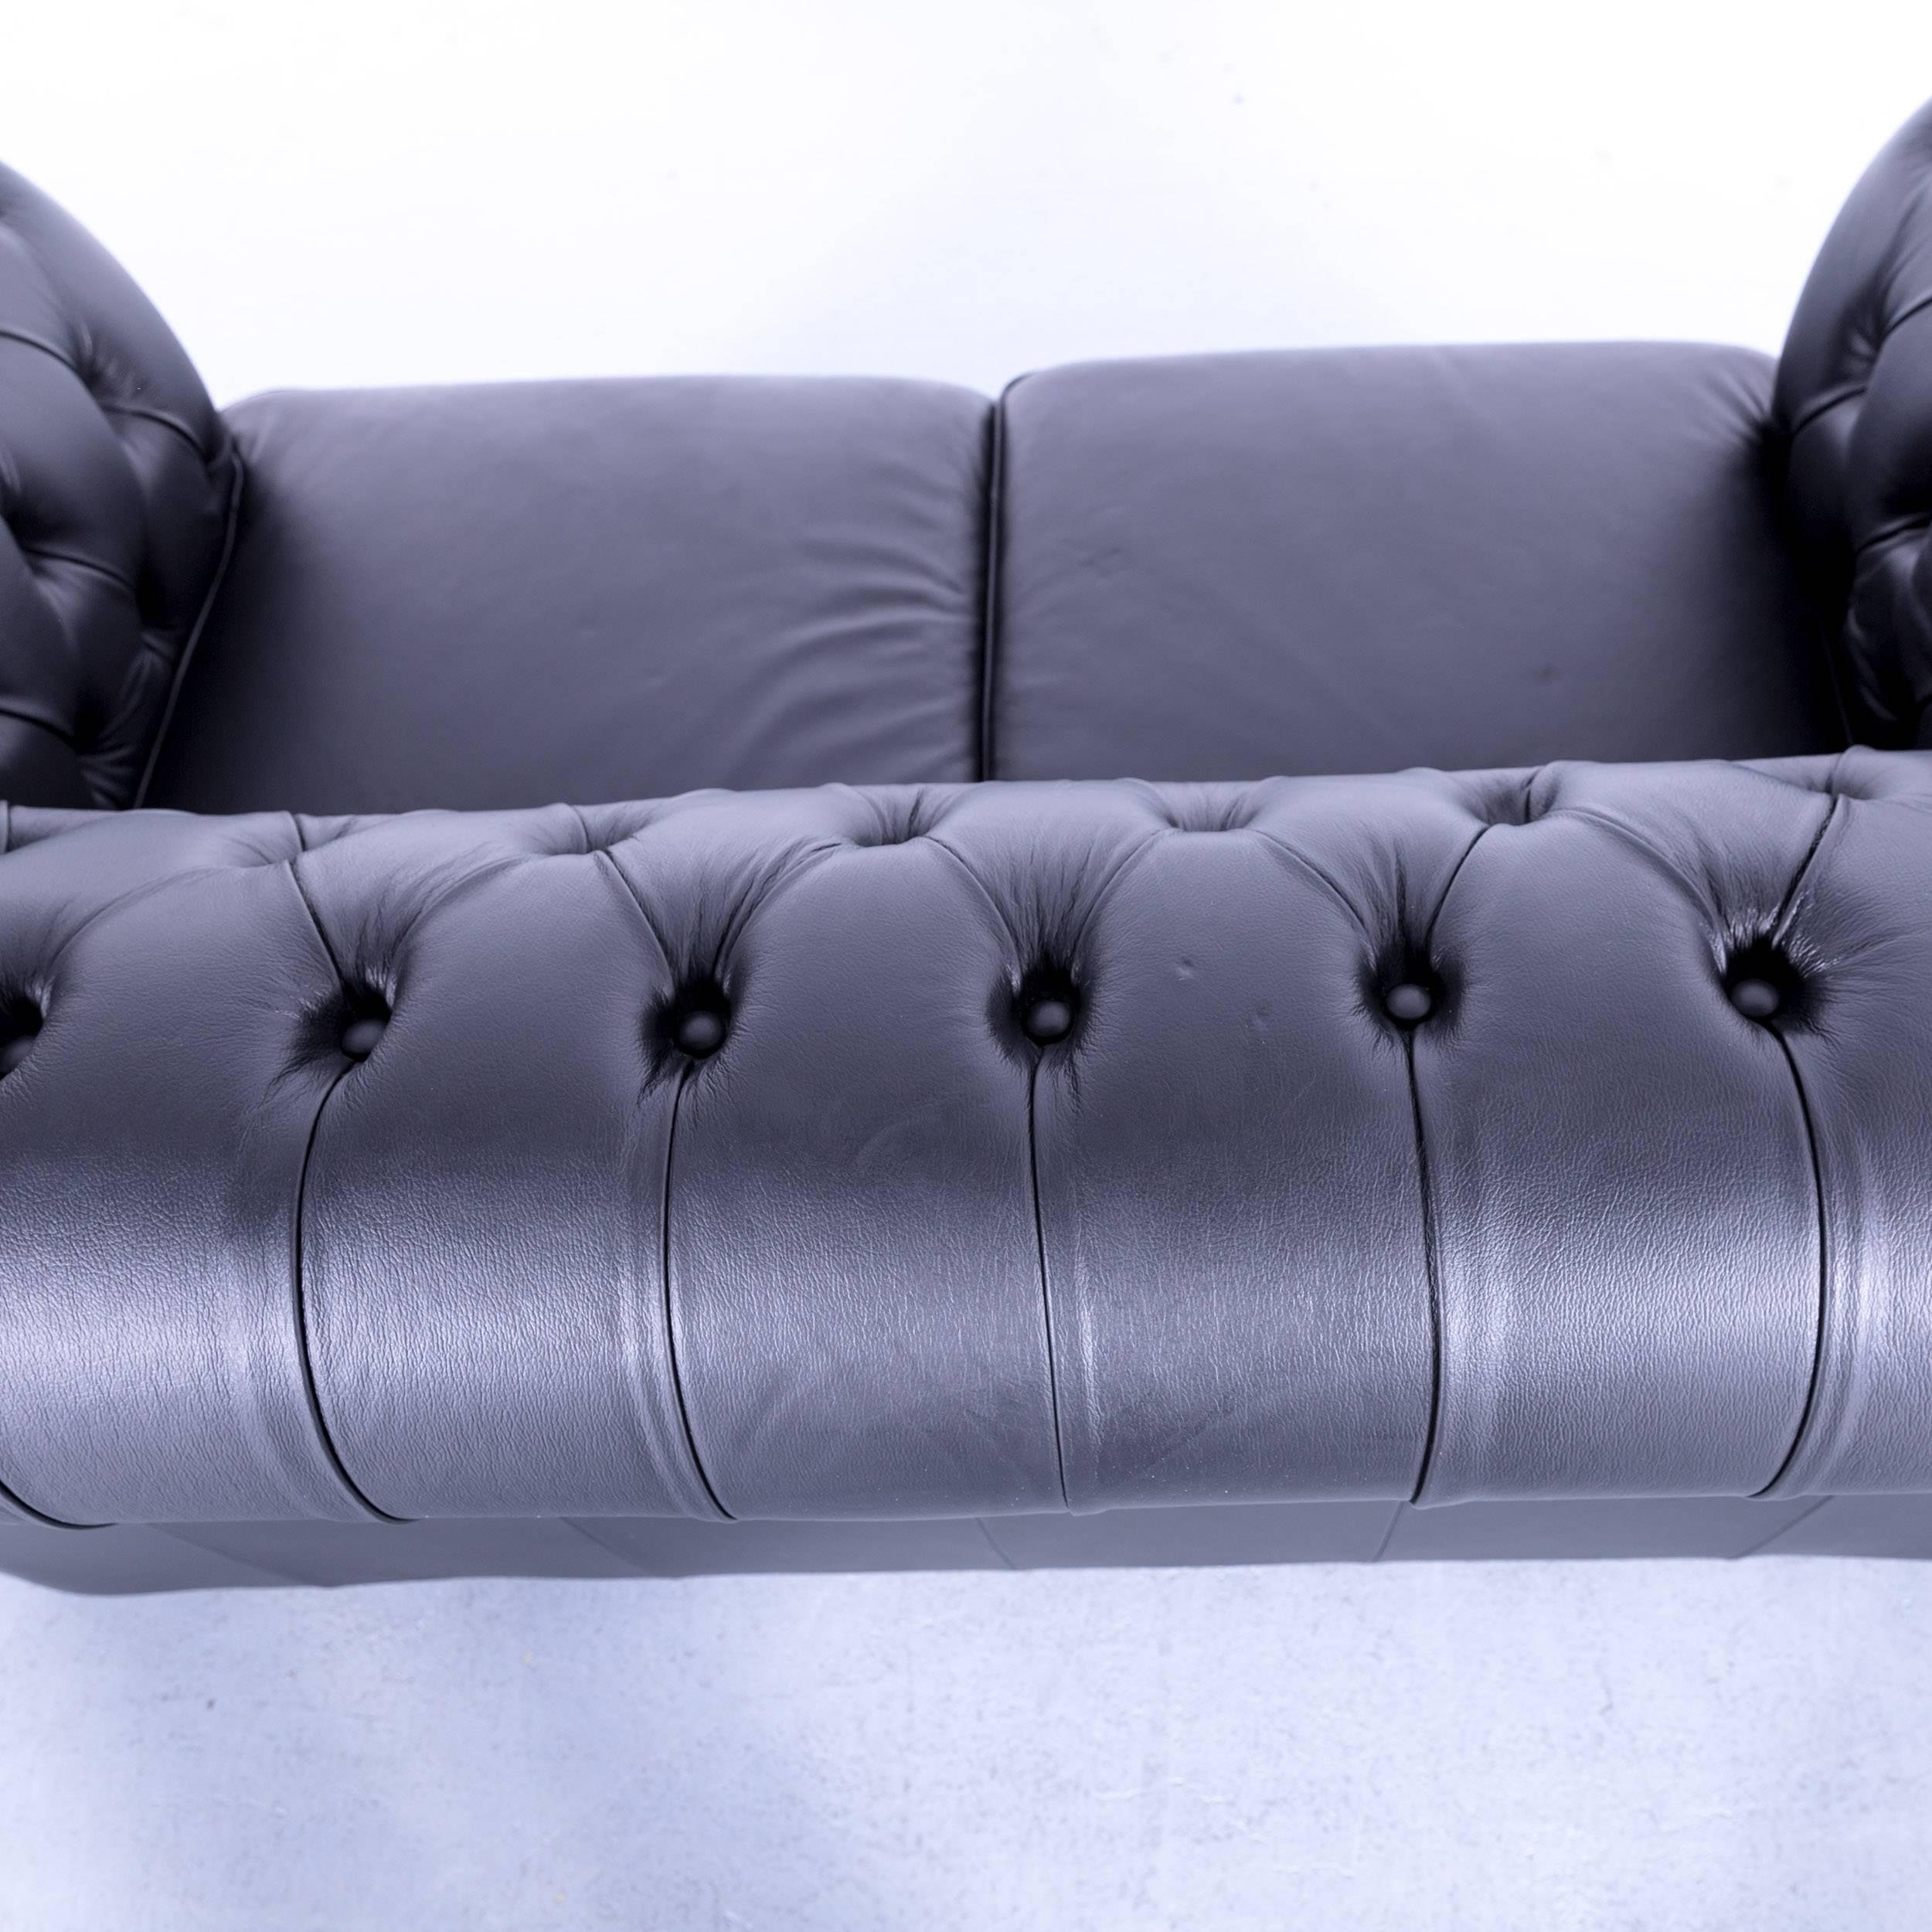 Max Winzer Chesterfield Sofa Black Leather Two Seat Couch Vintage Retro  Rivets For Sale 1